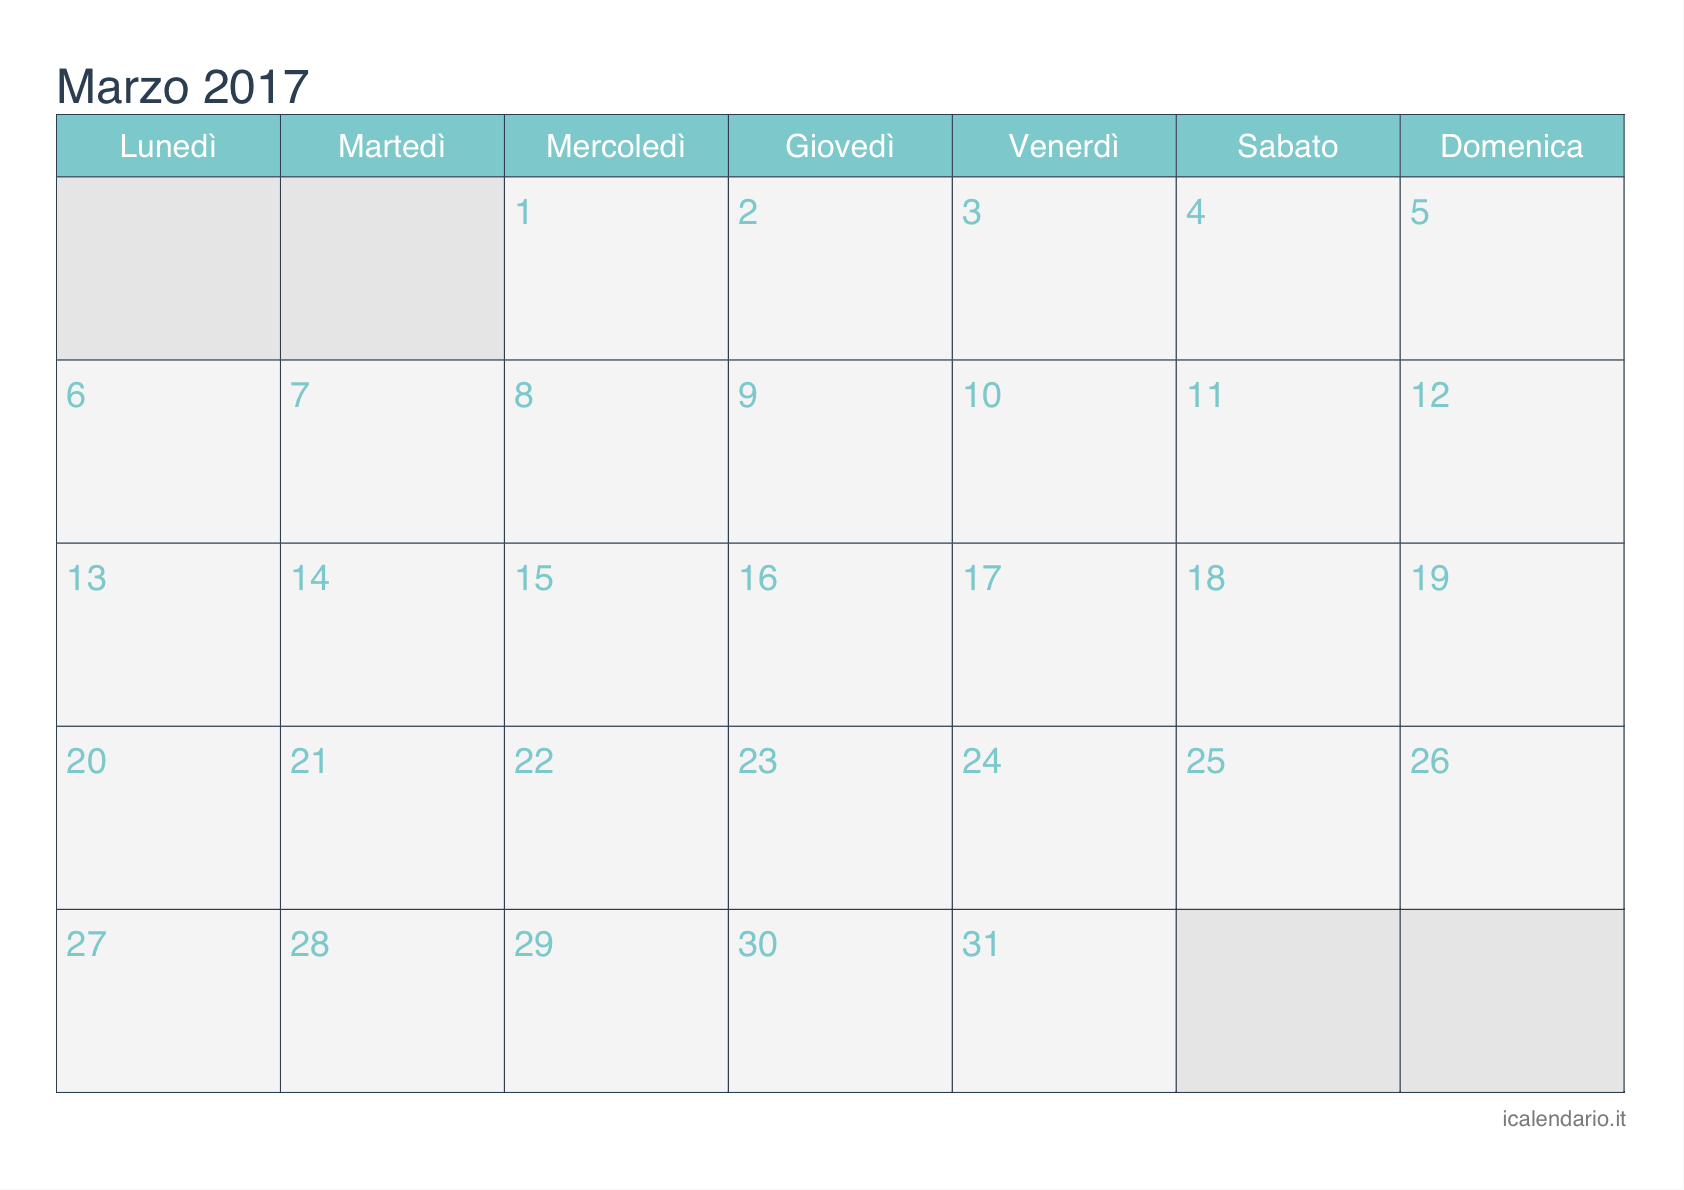 Amato Calendario marzo 2017 da stampare - iCalendario.it RB45